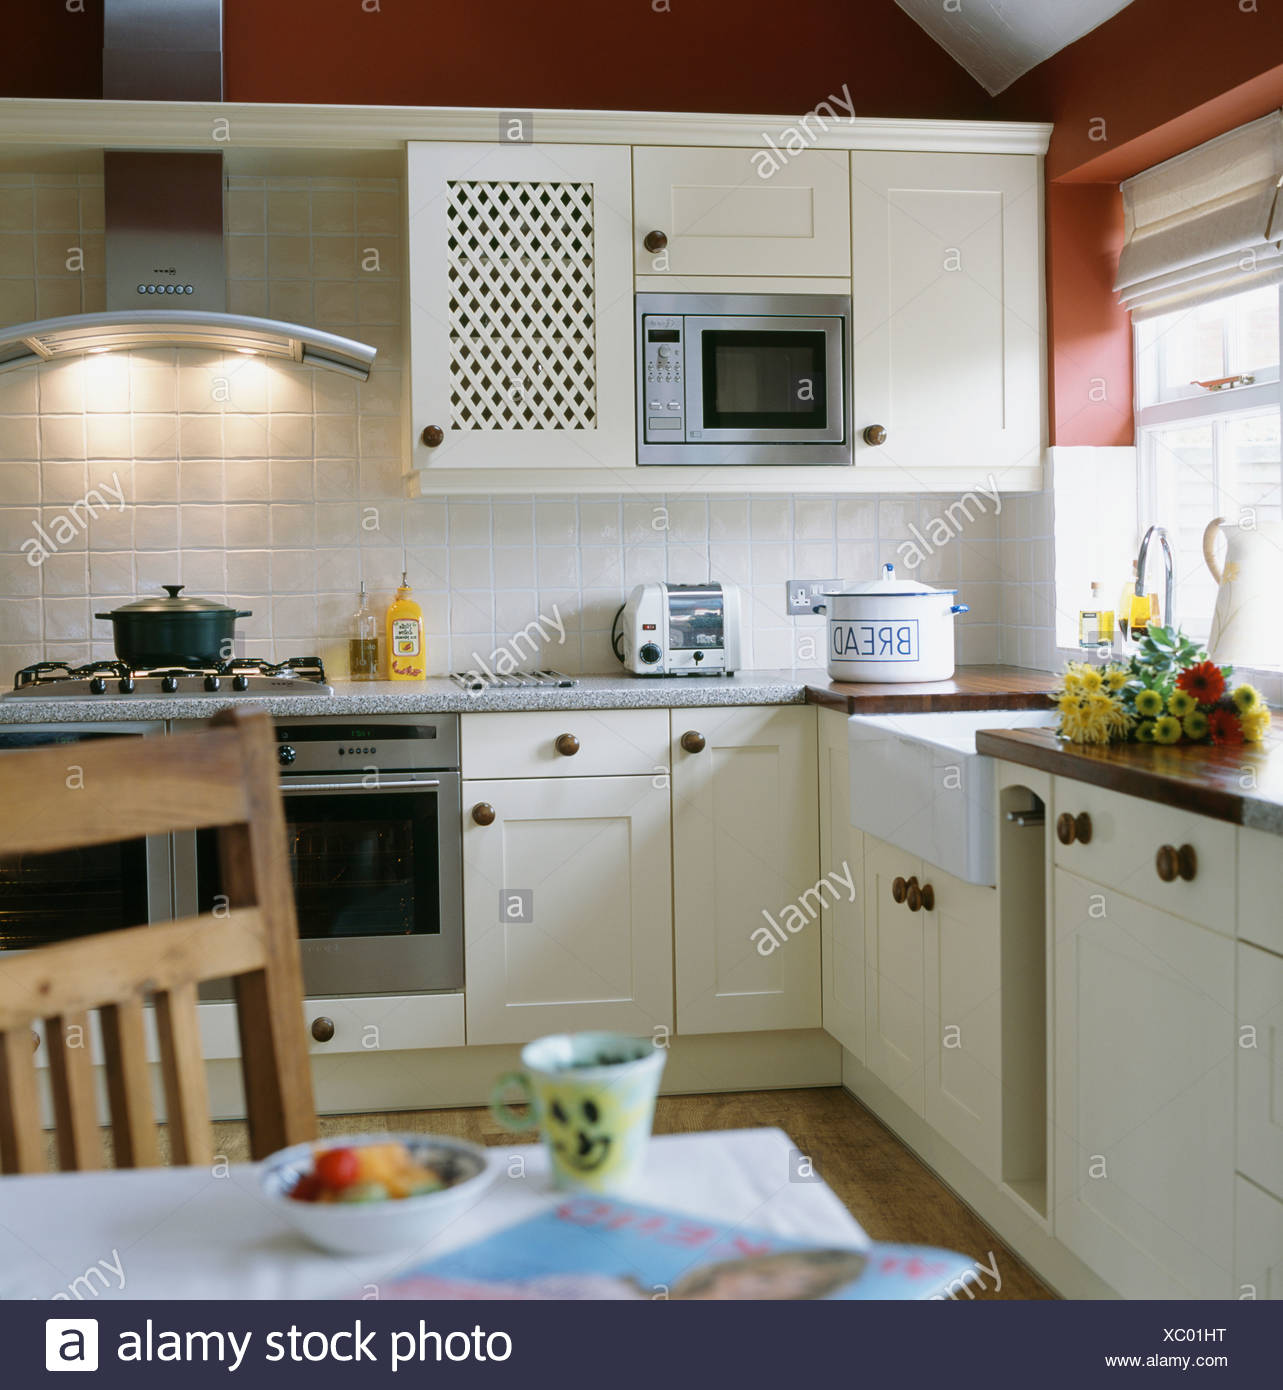 Kitchen Extractor Fans Stock Photos & Kitchen Extractor Fans ...